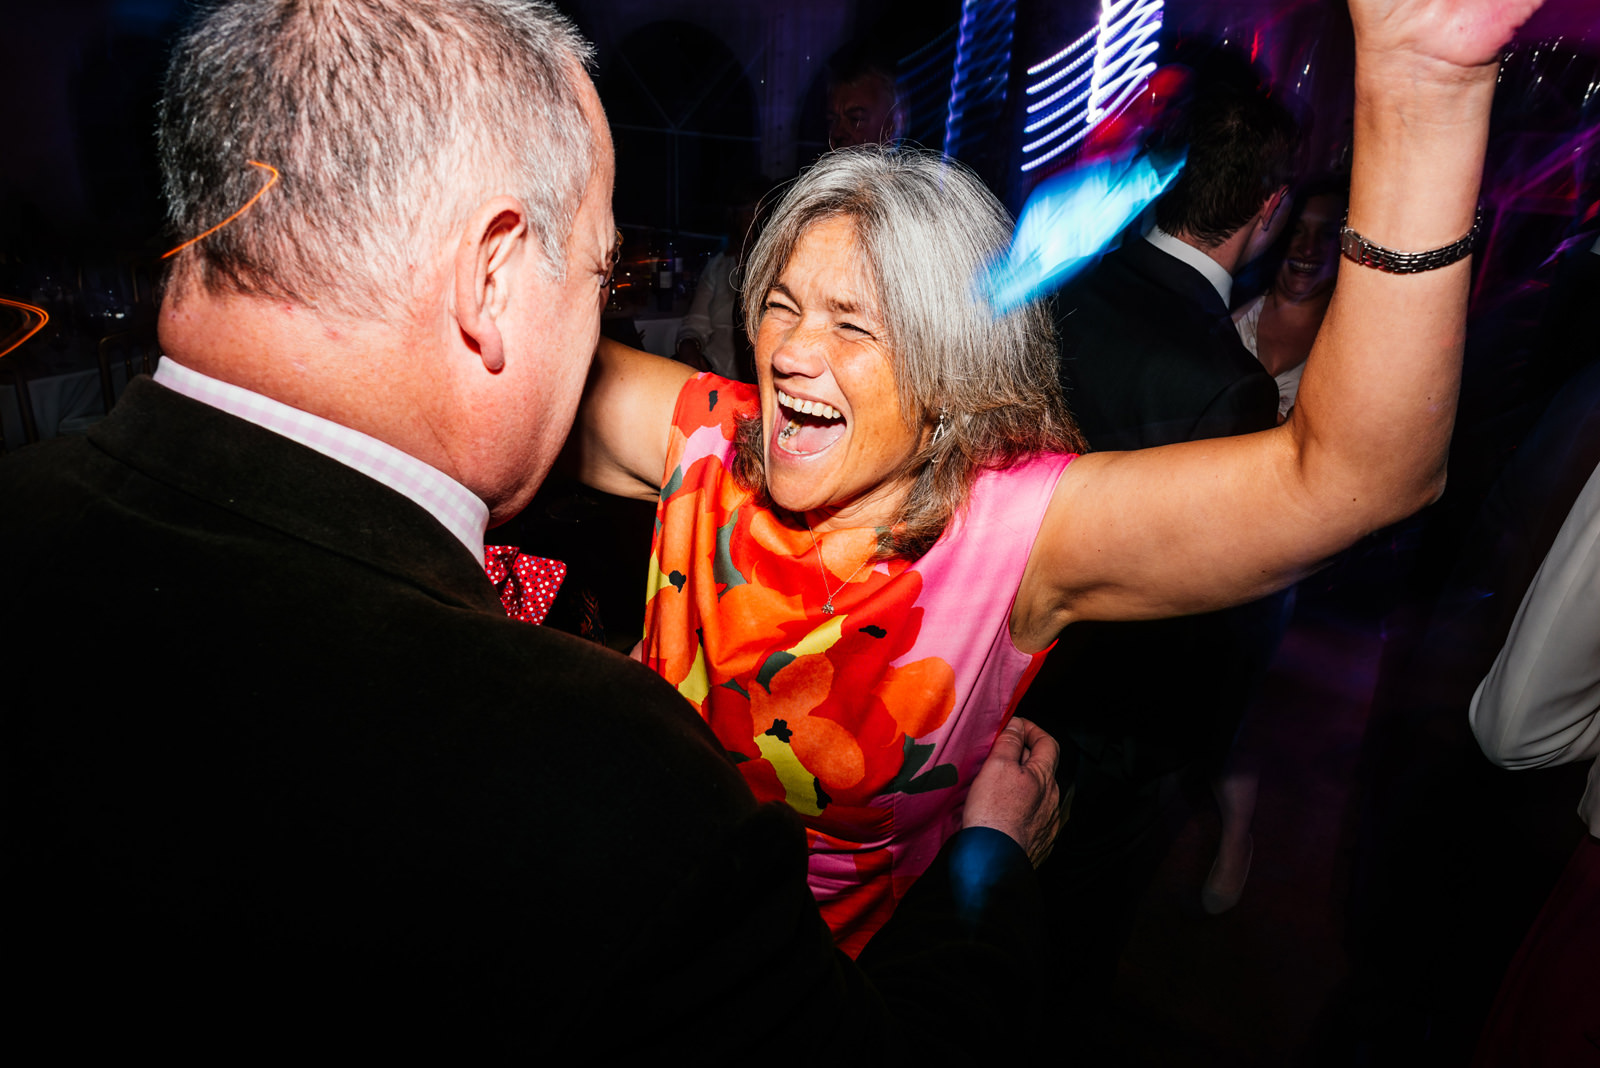 Guests having fun on the dance floor